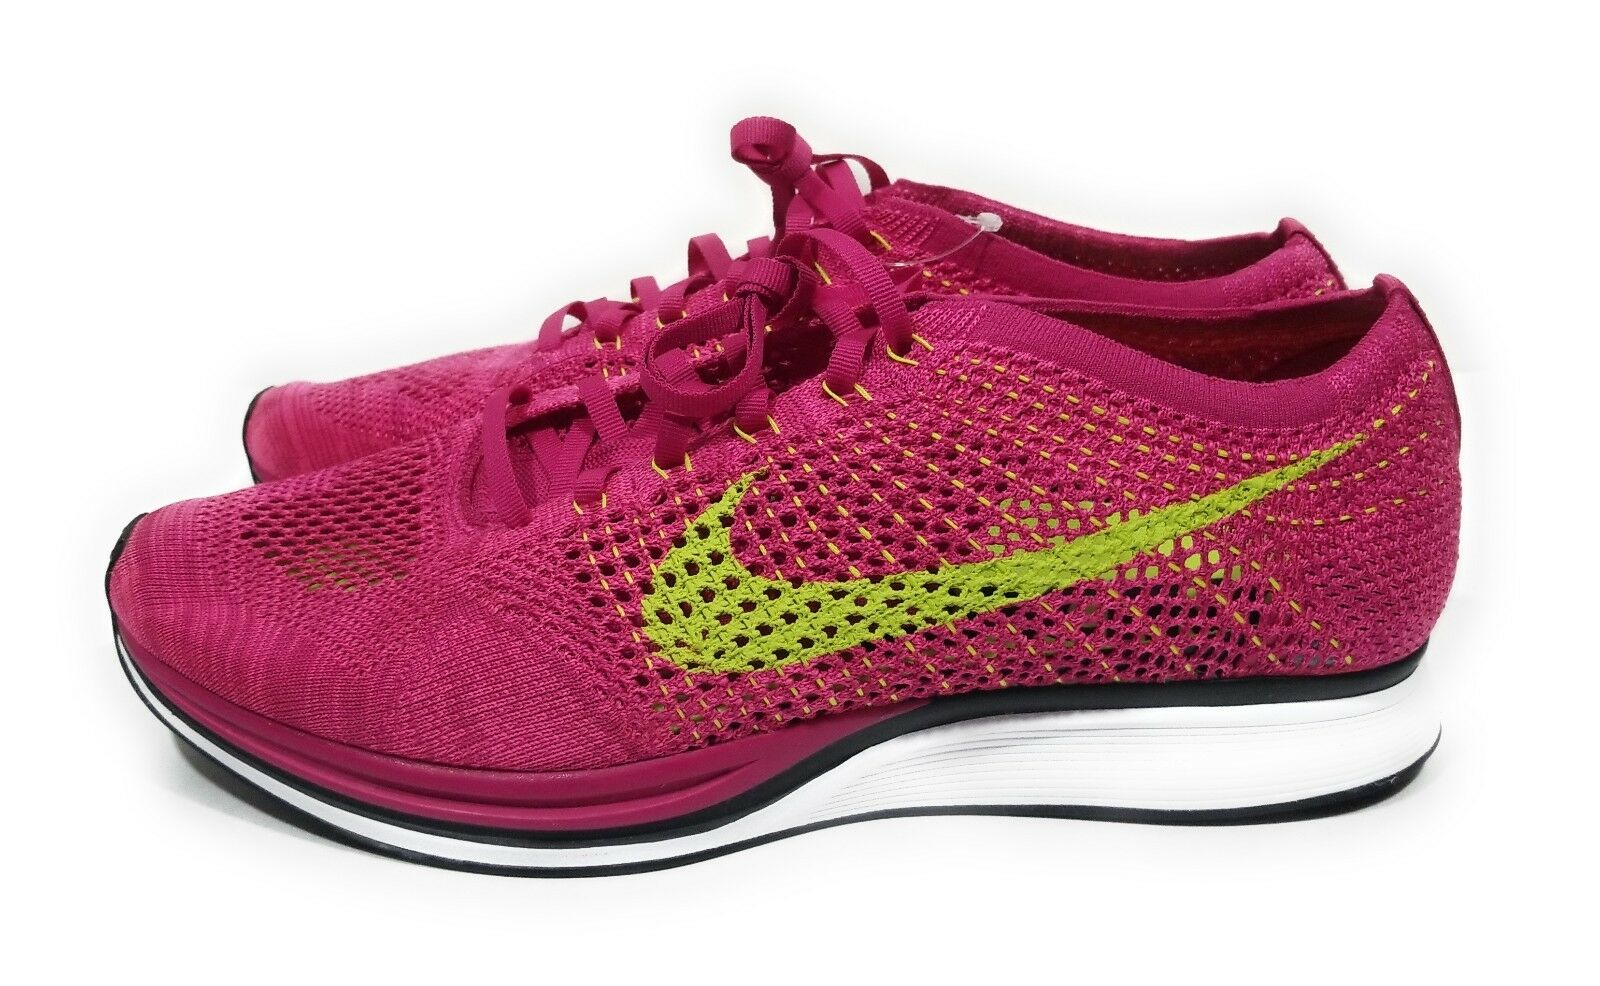 Nike Flyknit Racer Mens Running shoes Pink Volt Size 11